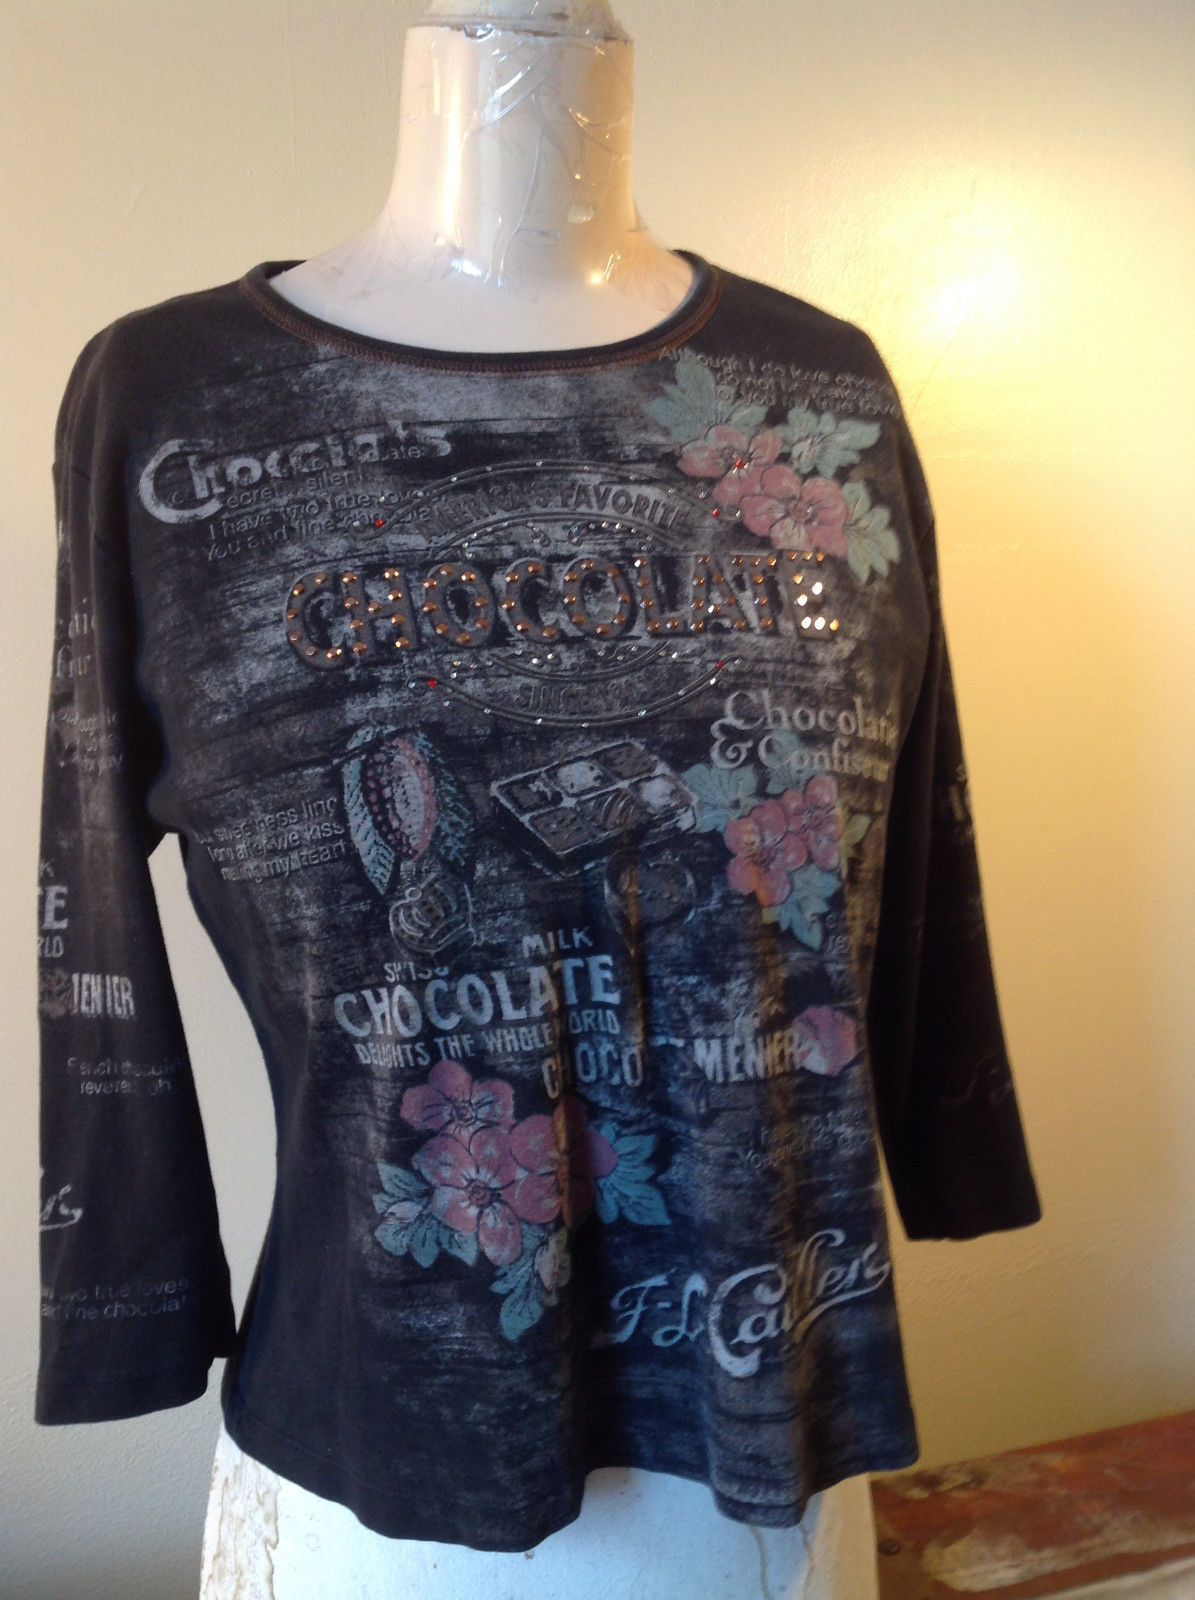 Talk of the Walk Atlantic City Black Three Quarter Length Sleeves Top Size M